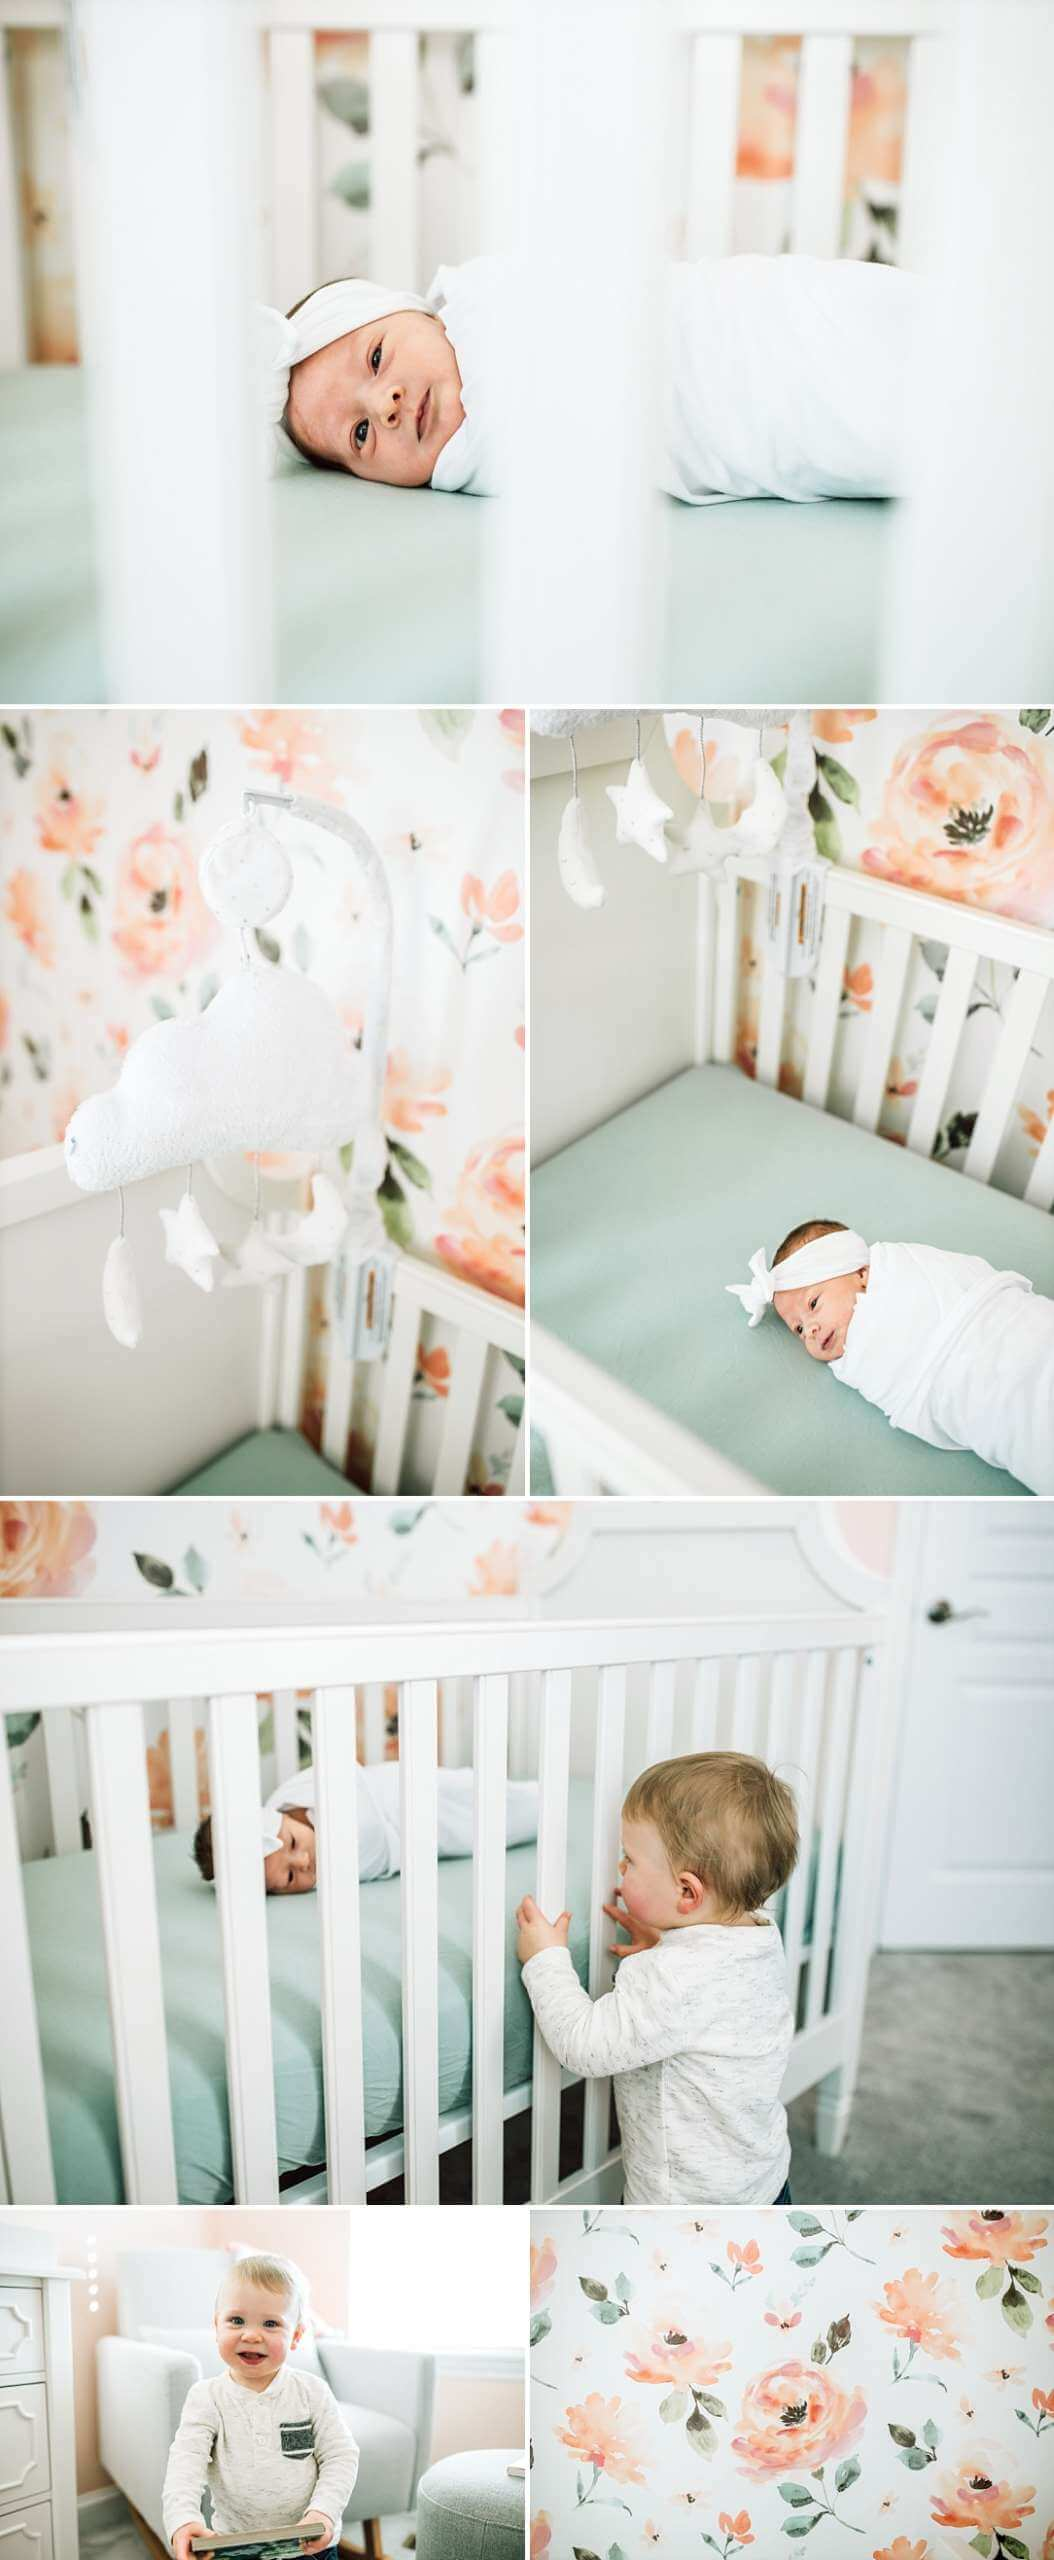 toddler looking at baby sister laying in her crib